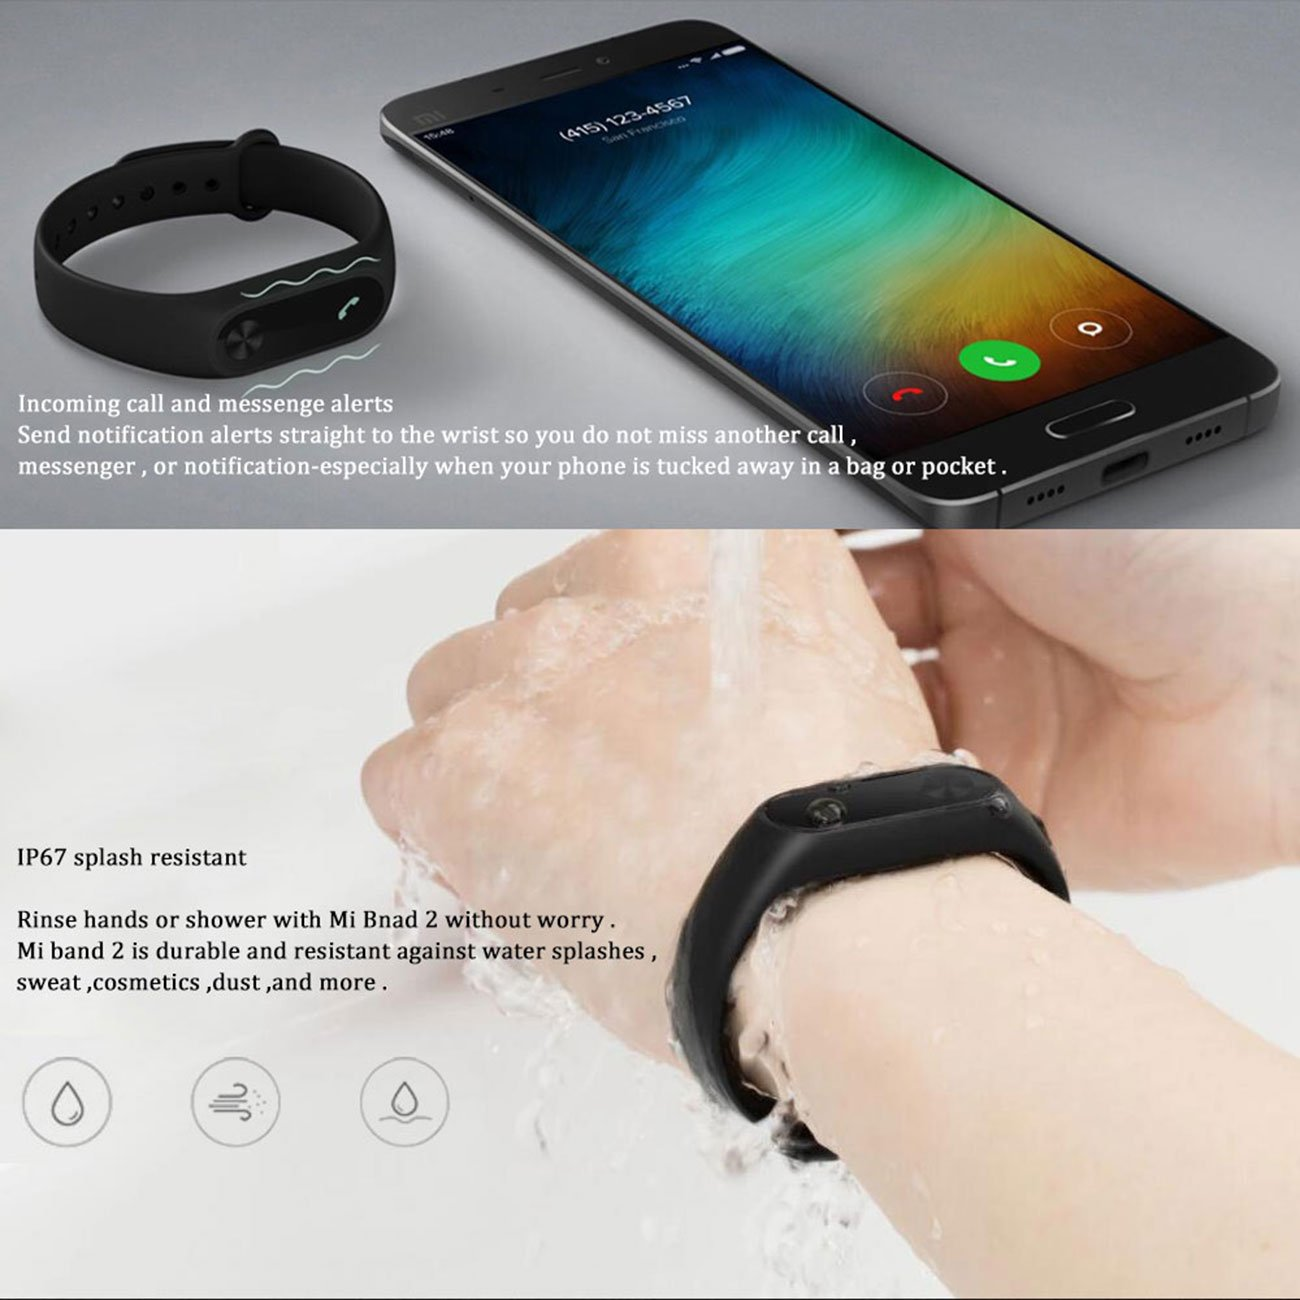 Xiaomi Mi Band 2 With A Strap Bluetooth 40 Original Smart Bracelet Wristband Oled Display Water Resistant Heart Rate Fitness Tracker